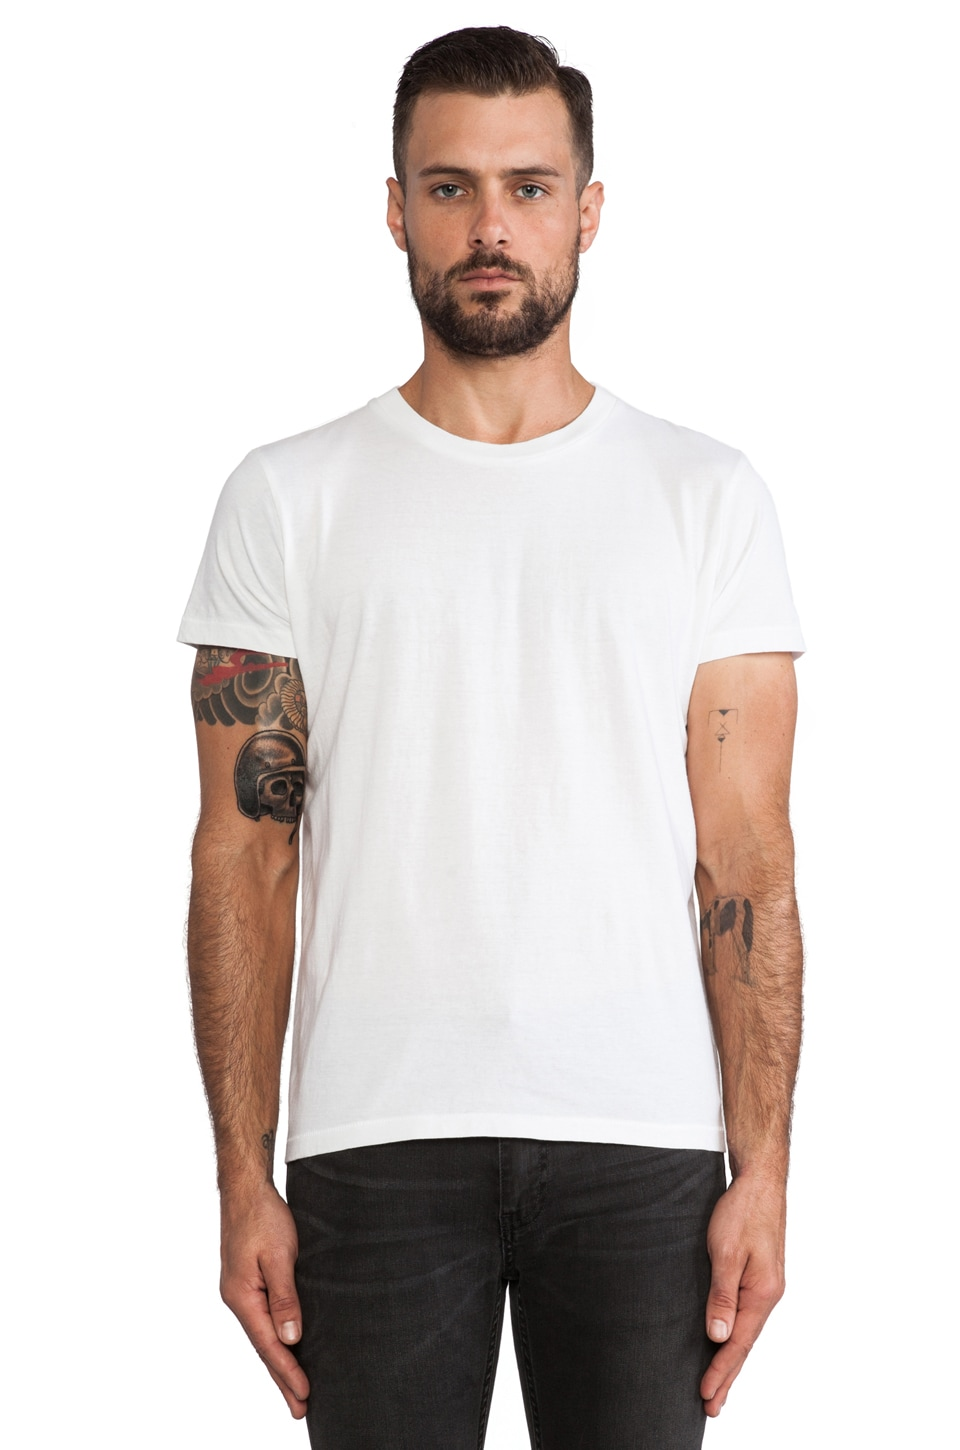 NEUW 3 Crown Enkle Service Tee in White